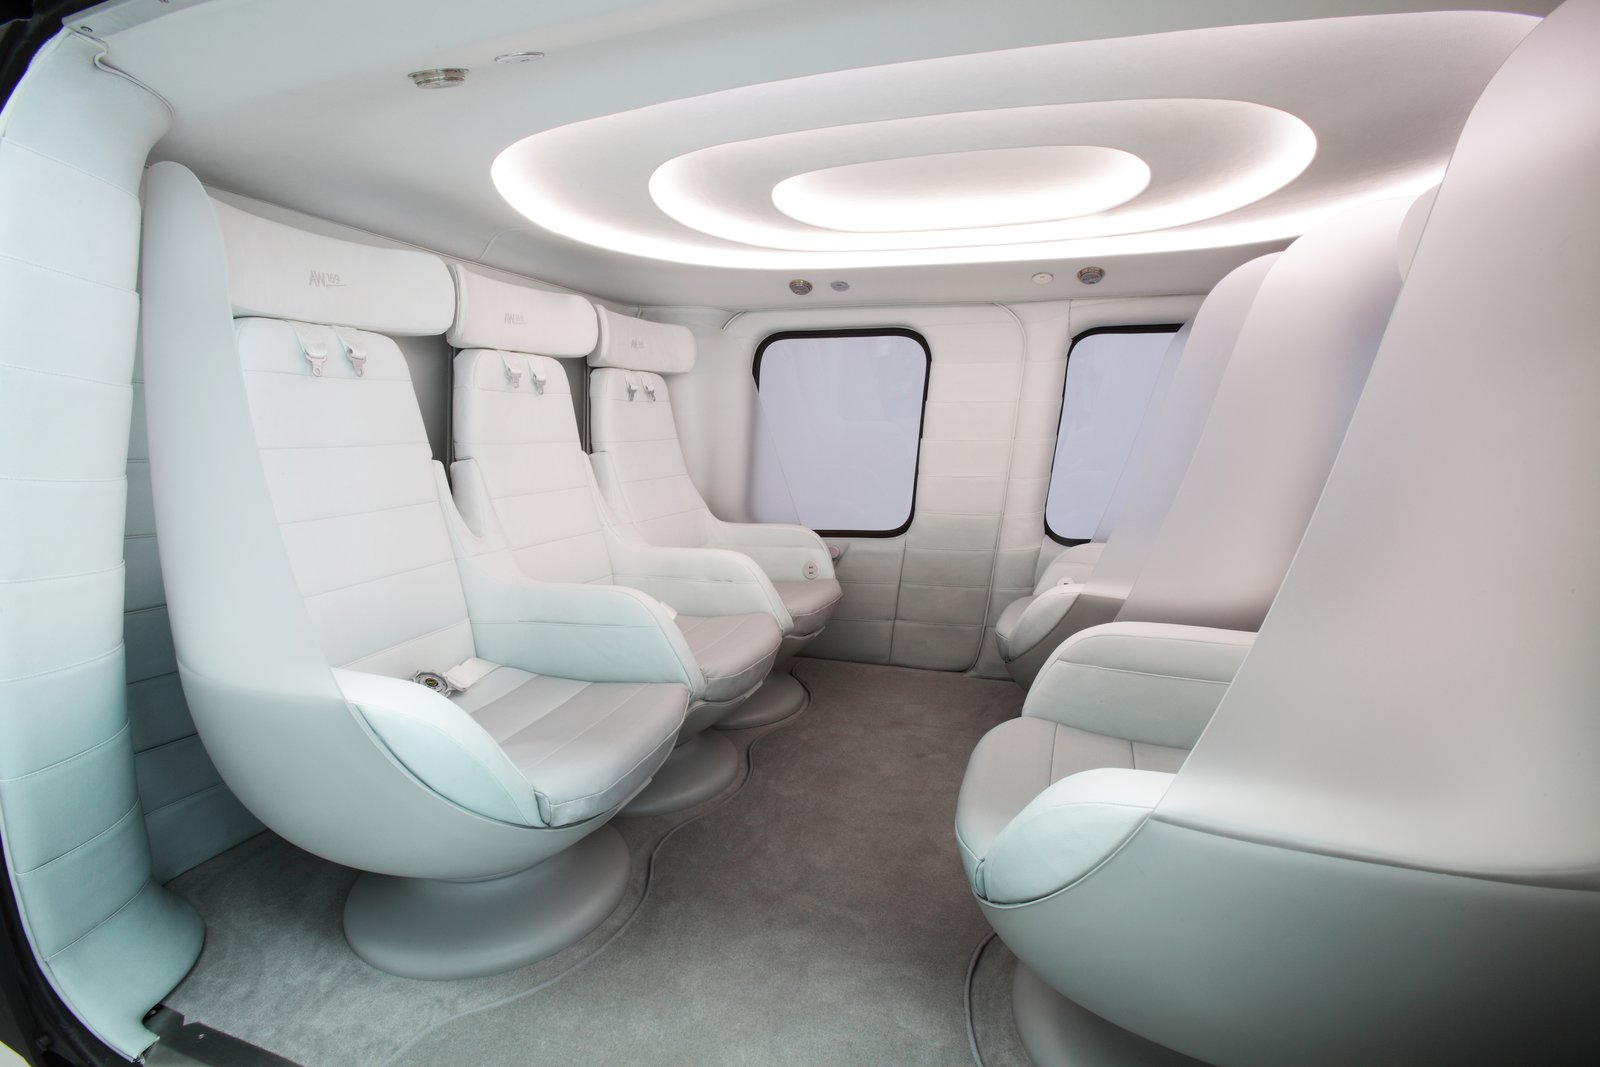 """This VIP interior for the AW169 helicopter can accommodate up to five passengers in cocoon-like leather seats. The cabin is done up in a neutral palette, placing emphasis on the passing scenery.  Search """"순천출장마사지-출장안마-출장-출장서비스 순천콜걸 출장샵 주소ㅋr톡BC388 주소[sannhu222,vip] 순천 출장여대생 만남 출장만남 업소 타이마사지 출장샵추천 업소  순천출장샵 출장서비스 출장업소"""" from The Ultimate Ride: VIP Helicopter with Plush Interior"""